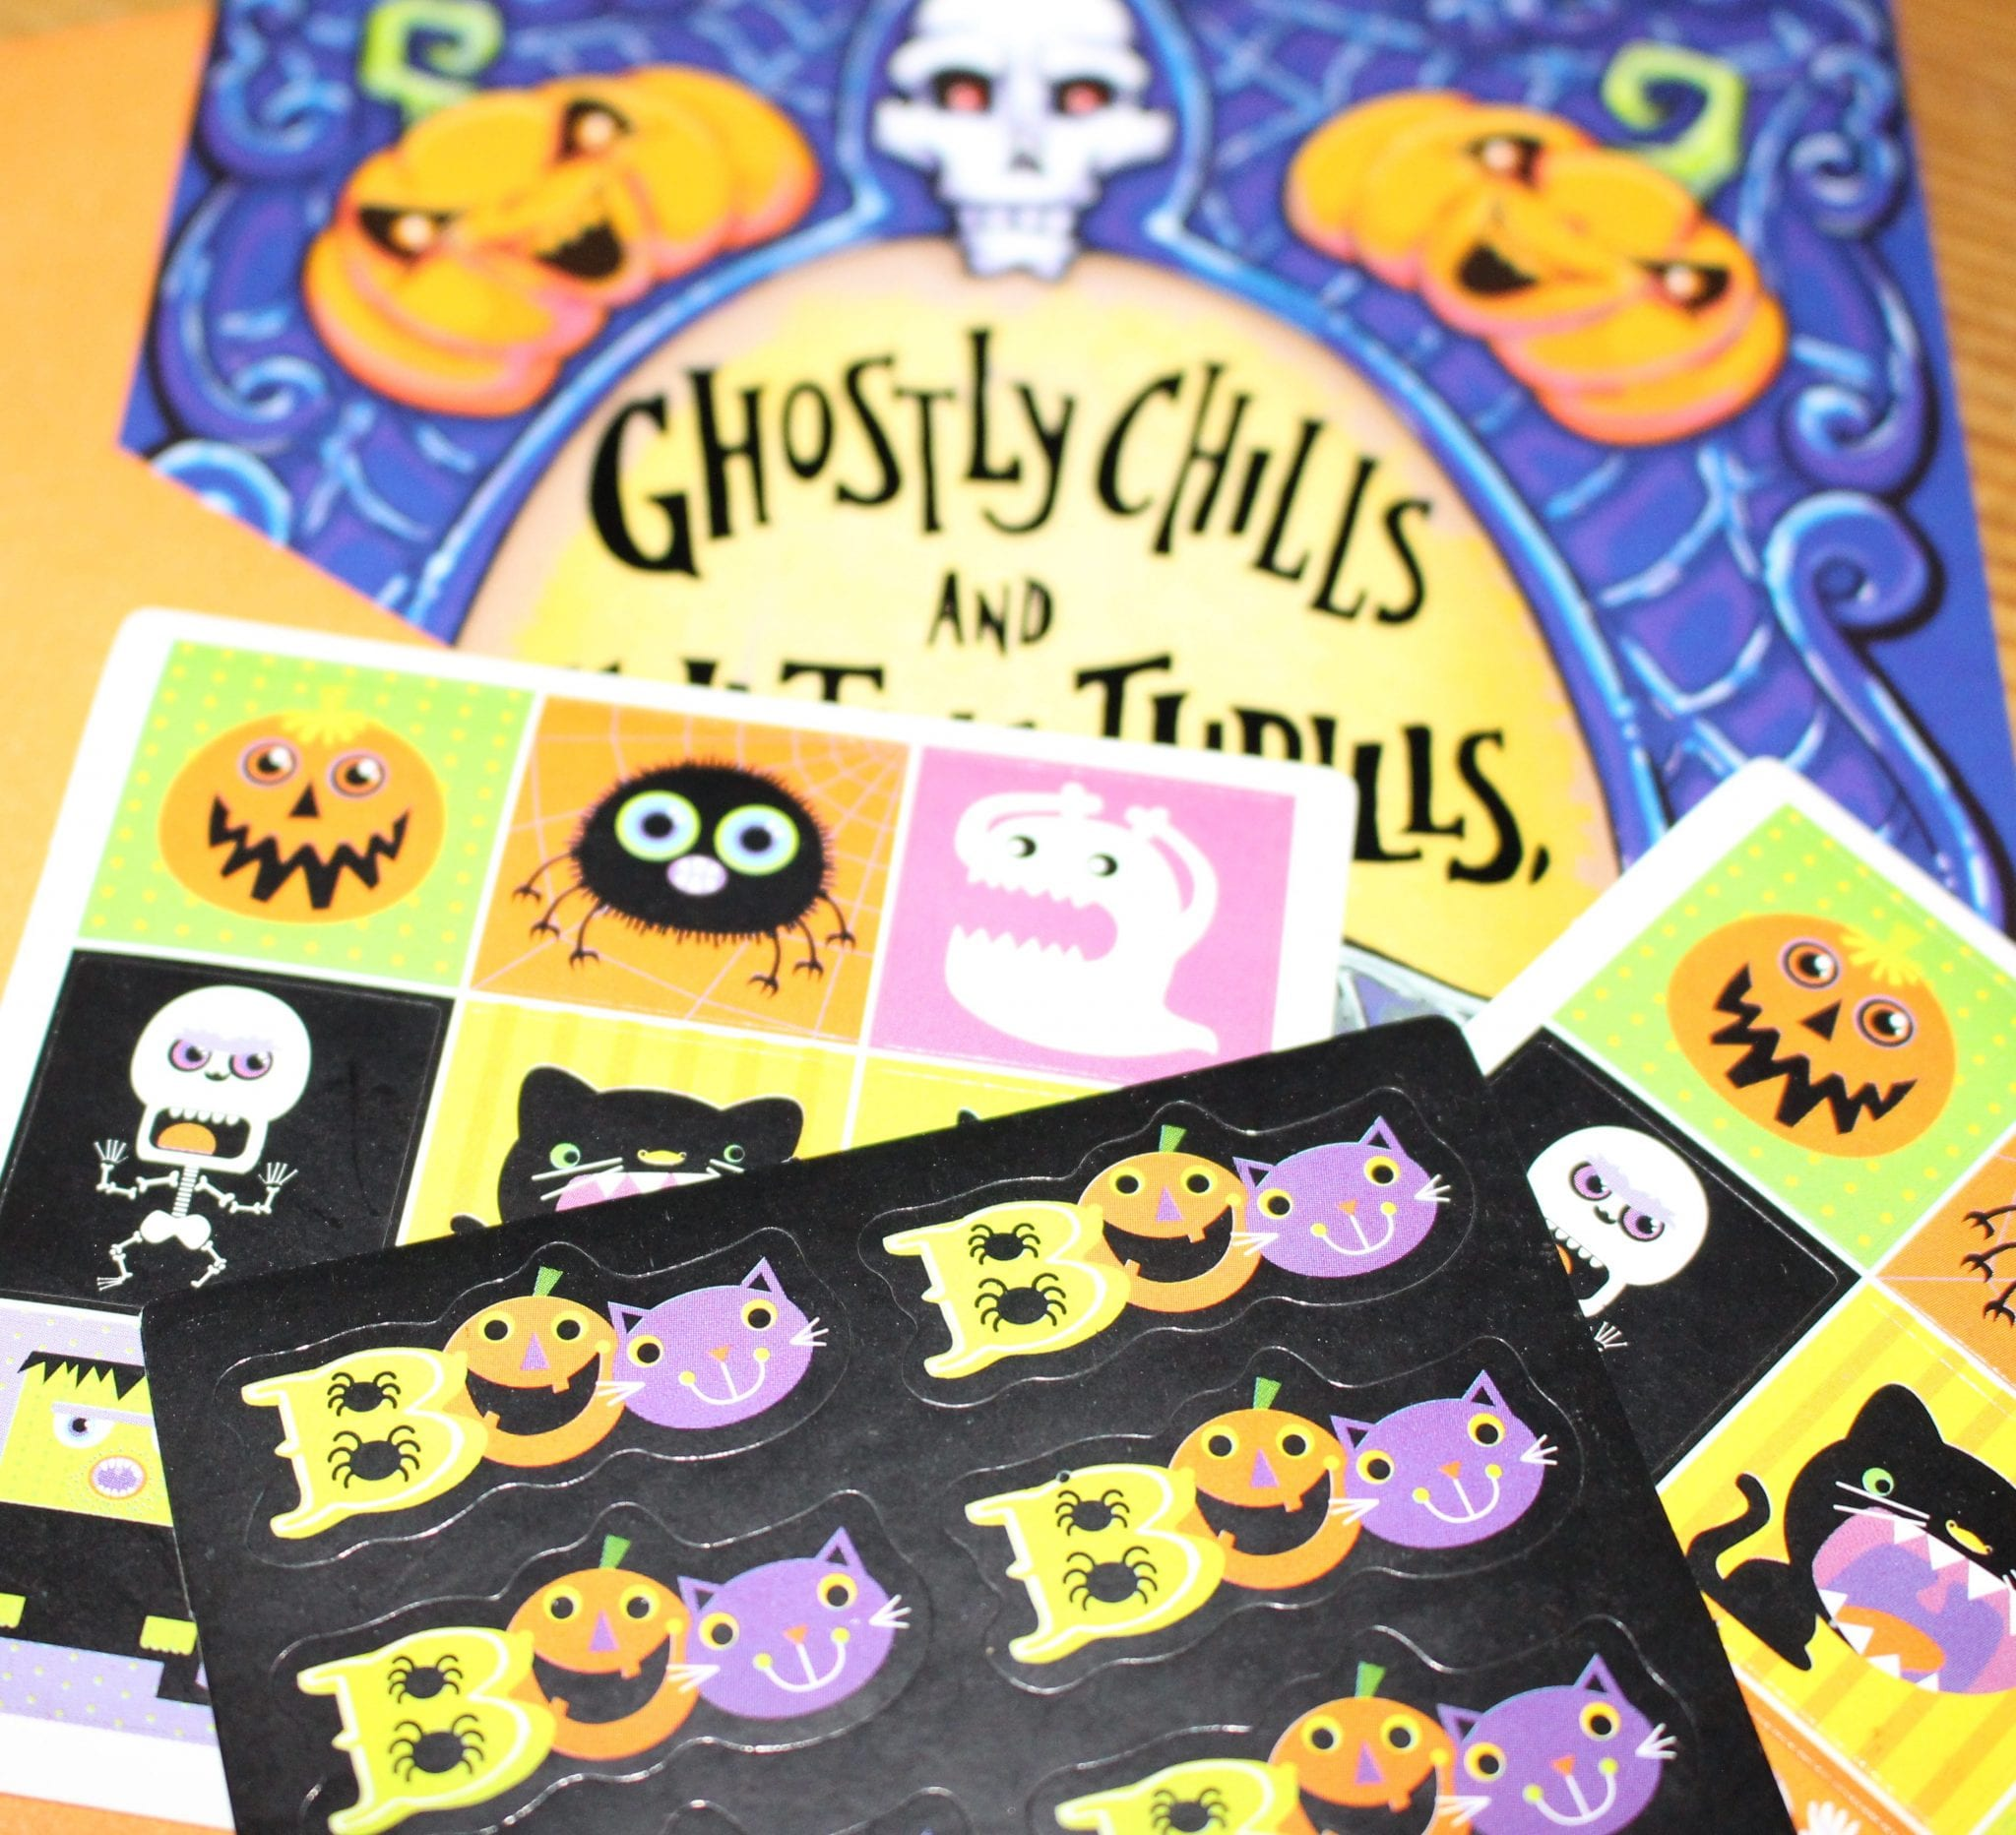 Mail out Halloween Cards for a Fun Family Tradition. www.goodlifeofahousewife.com